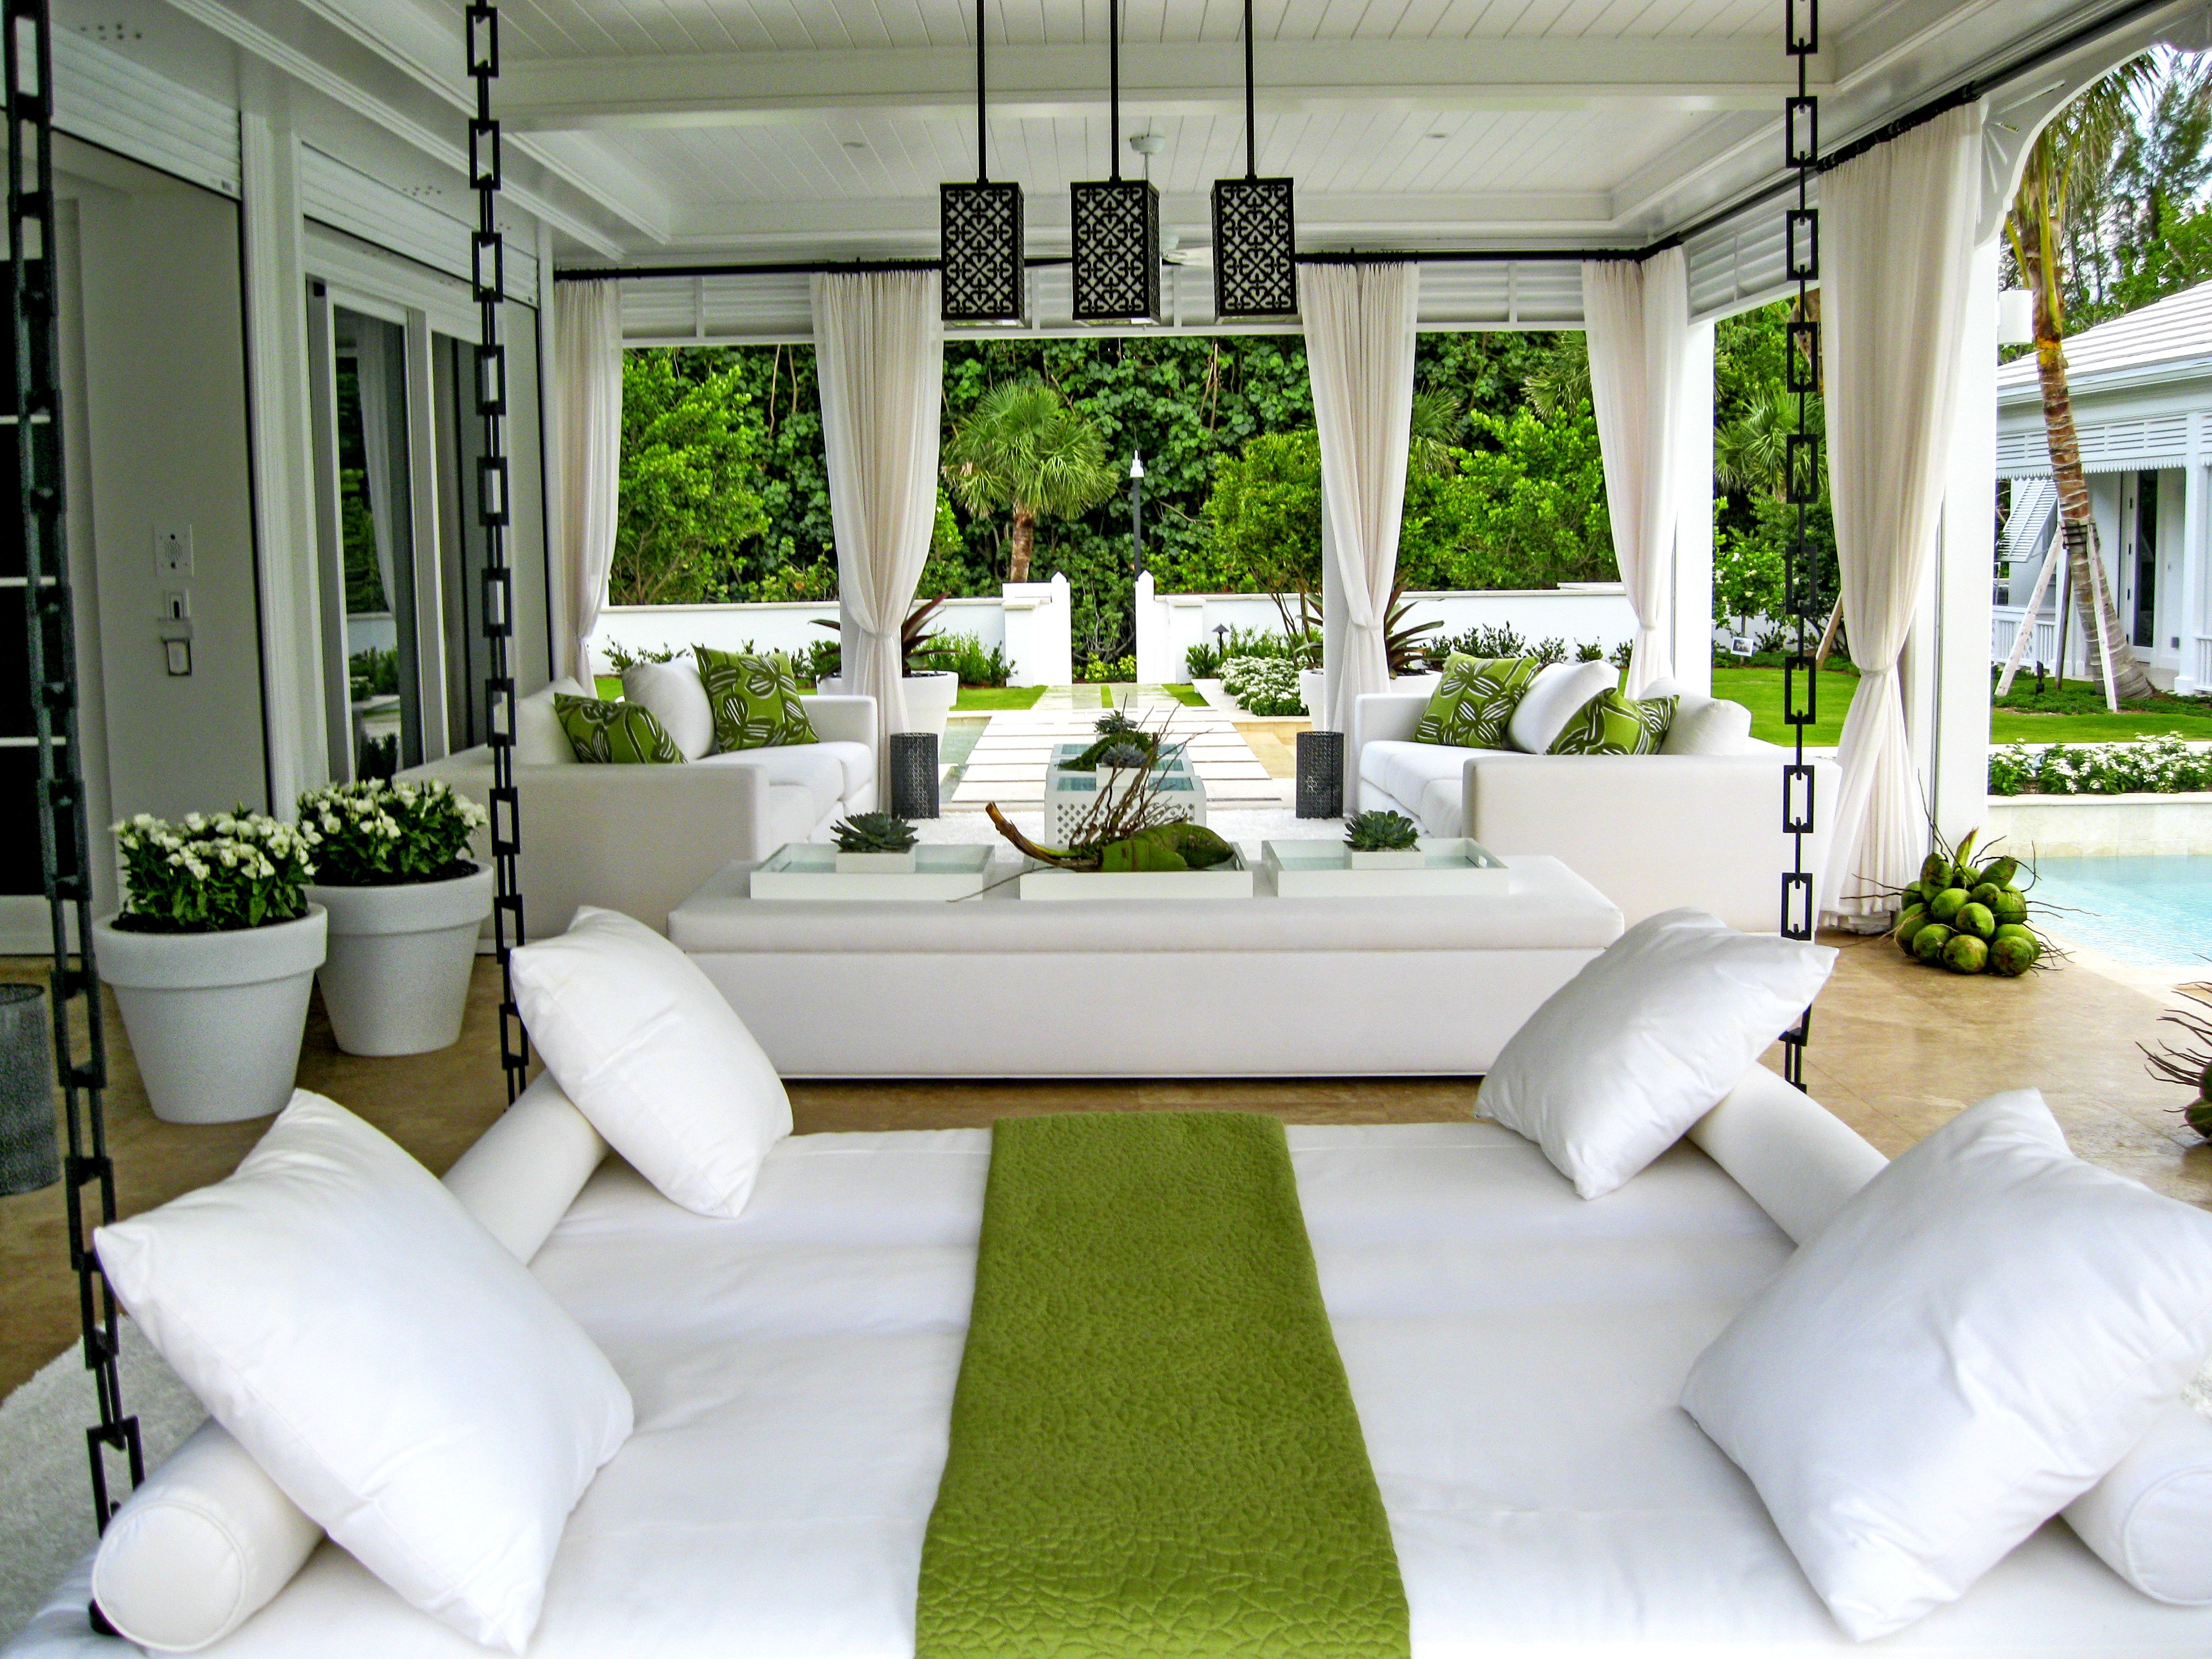 Upscale Luxury Interior Design Firm Serving The Palm Beaches Specializing In Modern Contemporary Clic And Transitional